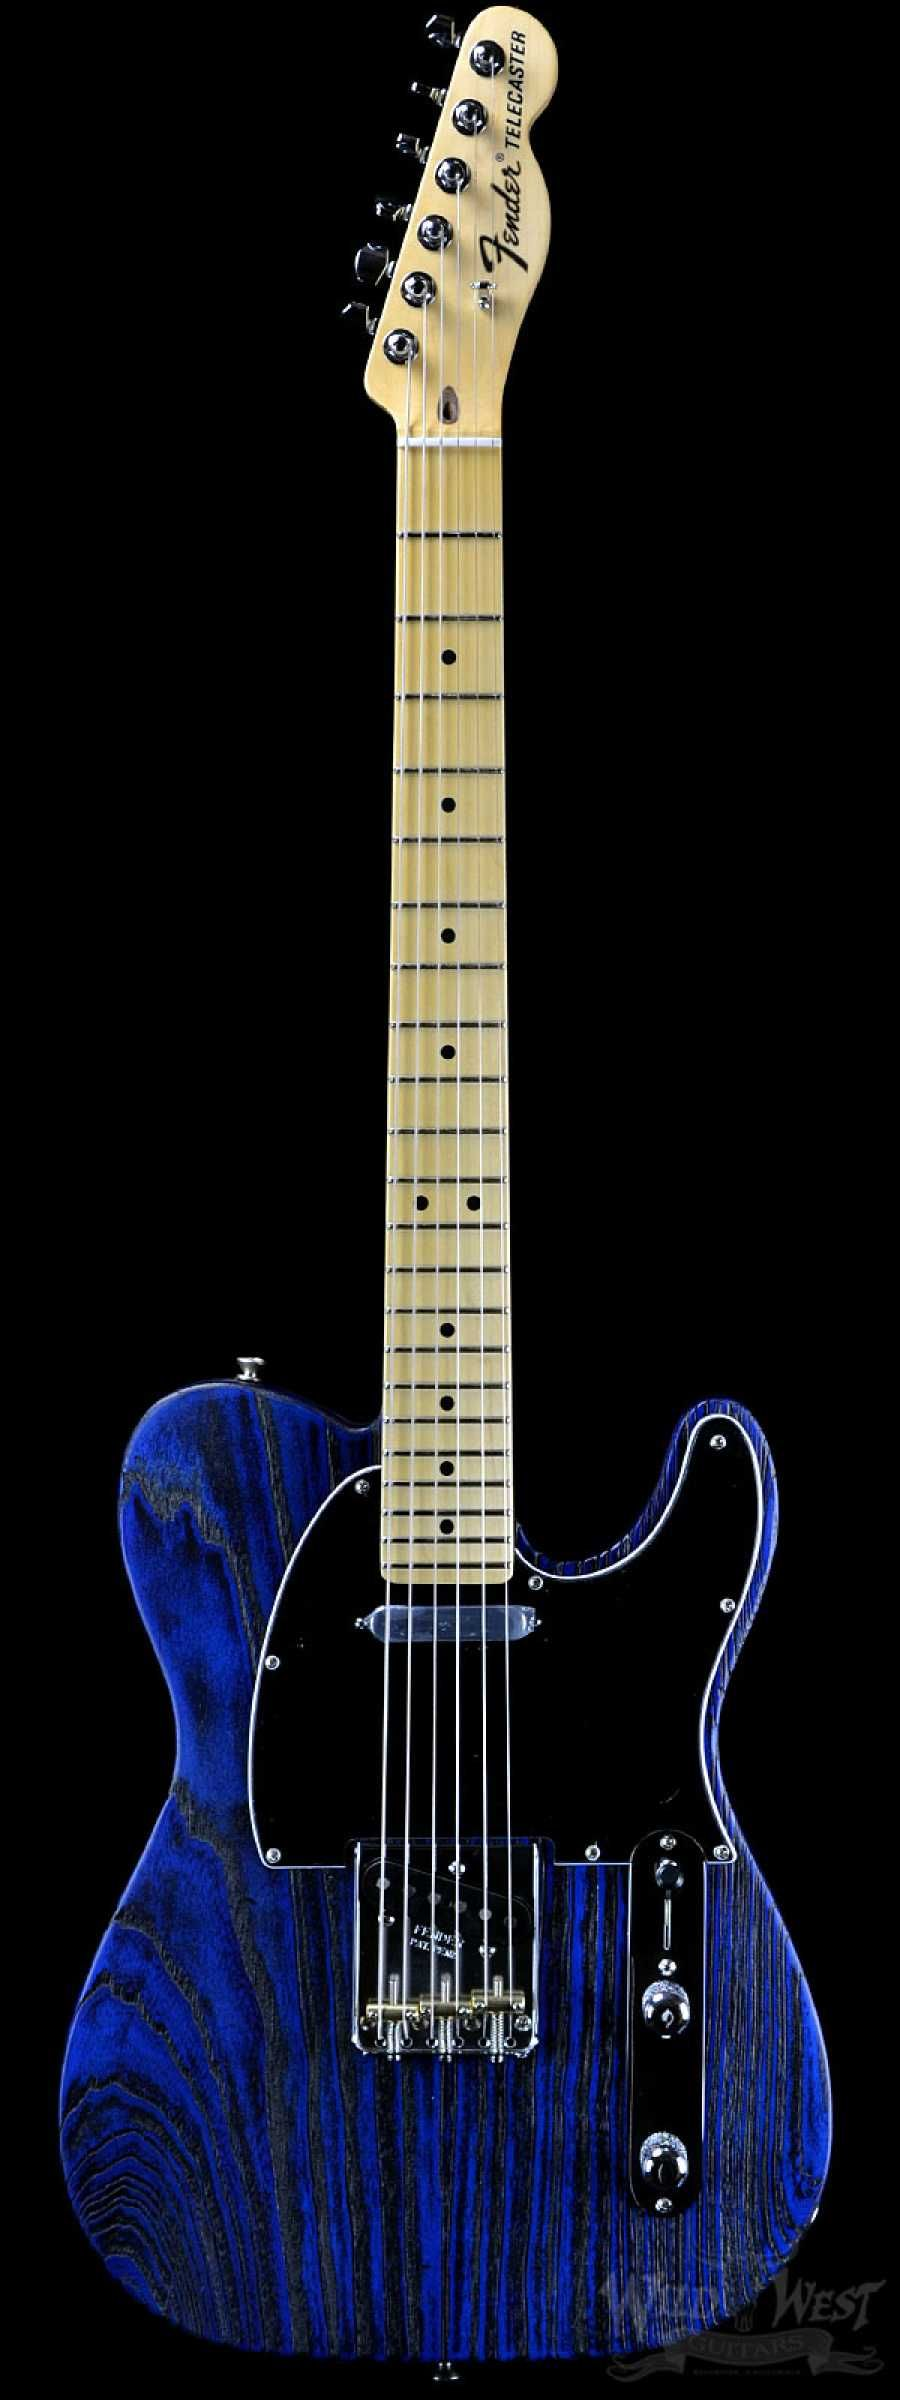 fender usa limited edition sandblasted telecaster sapphire blue transparent tele melee. Black Bedroom Furniture Sets. Home Design Ideas